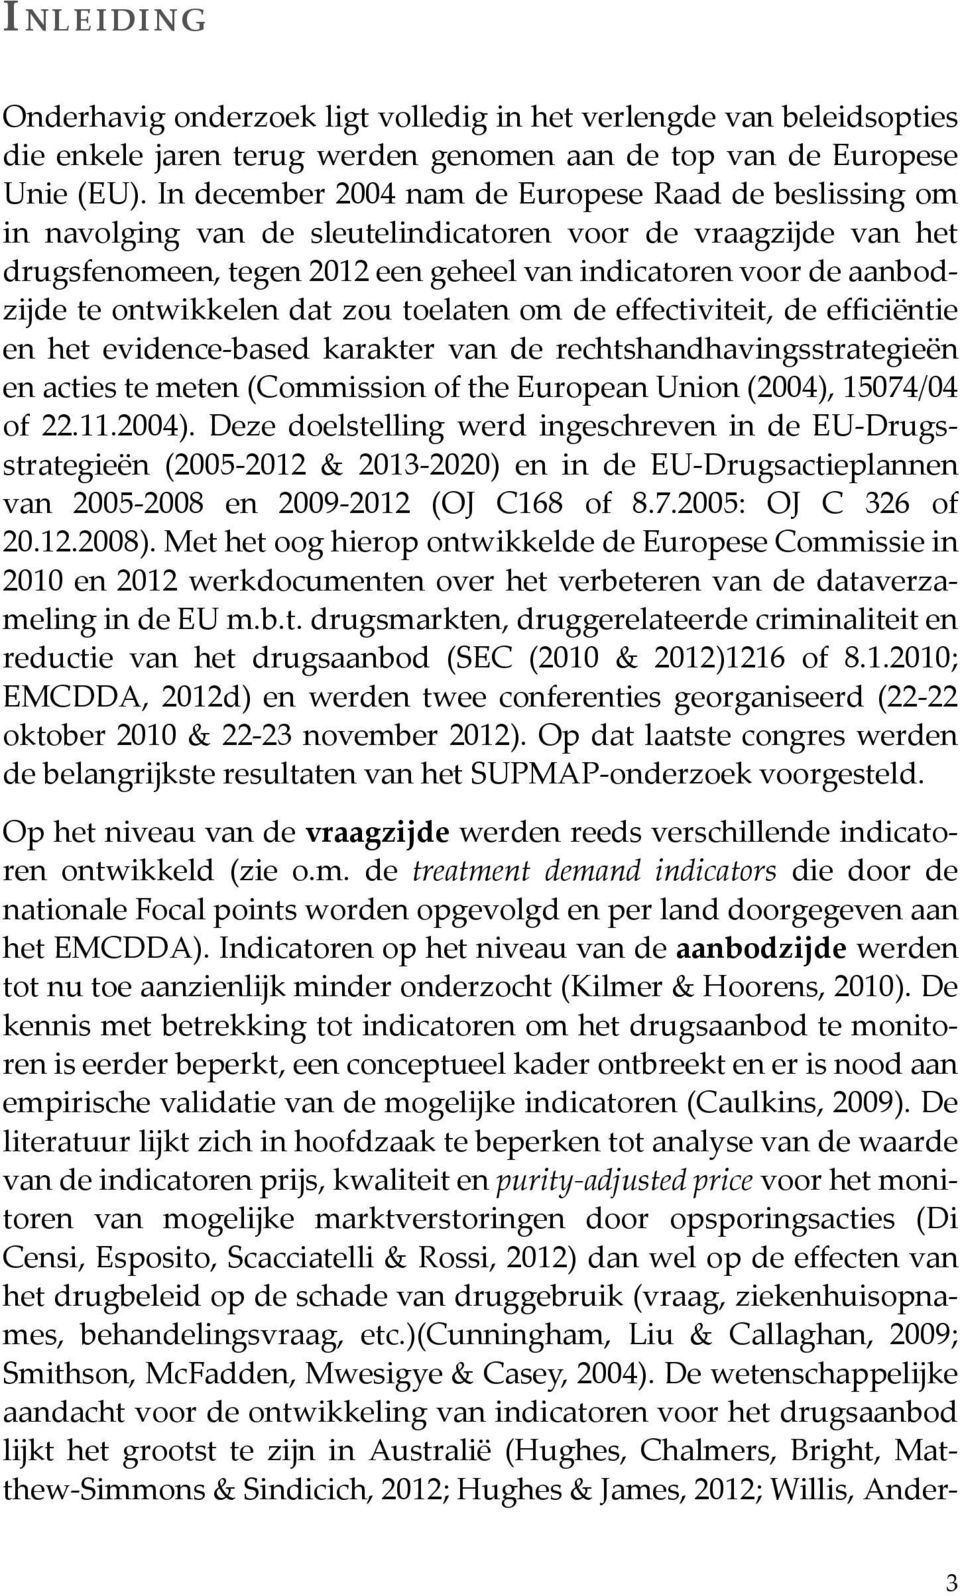 ontwikkelen dat zou toelaten om de effectiviteit, de efficiëntie en het evidence-based karakter van de rechtshandhavingsstrategieën en acties te meten (Commission of the European Union (2004),